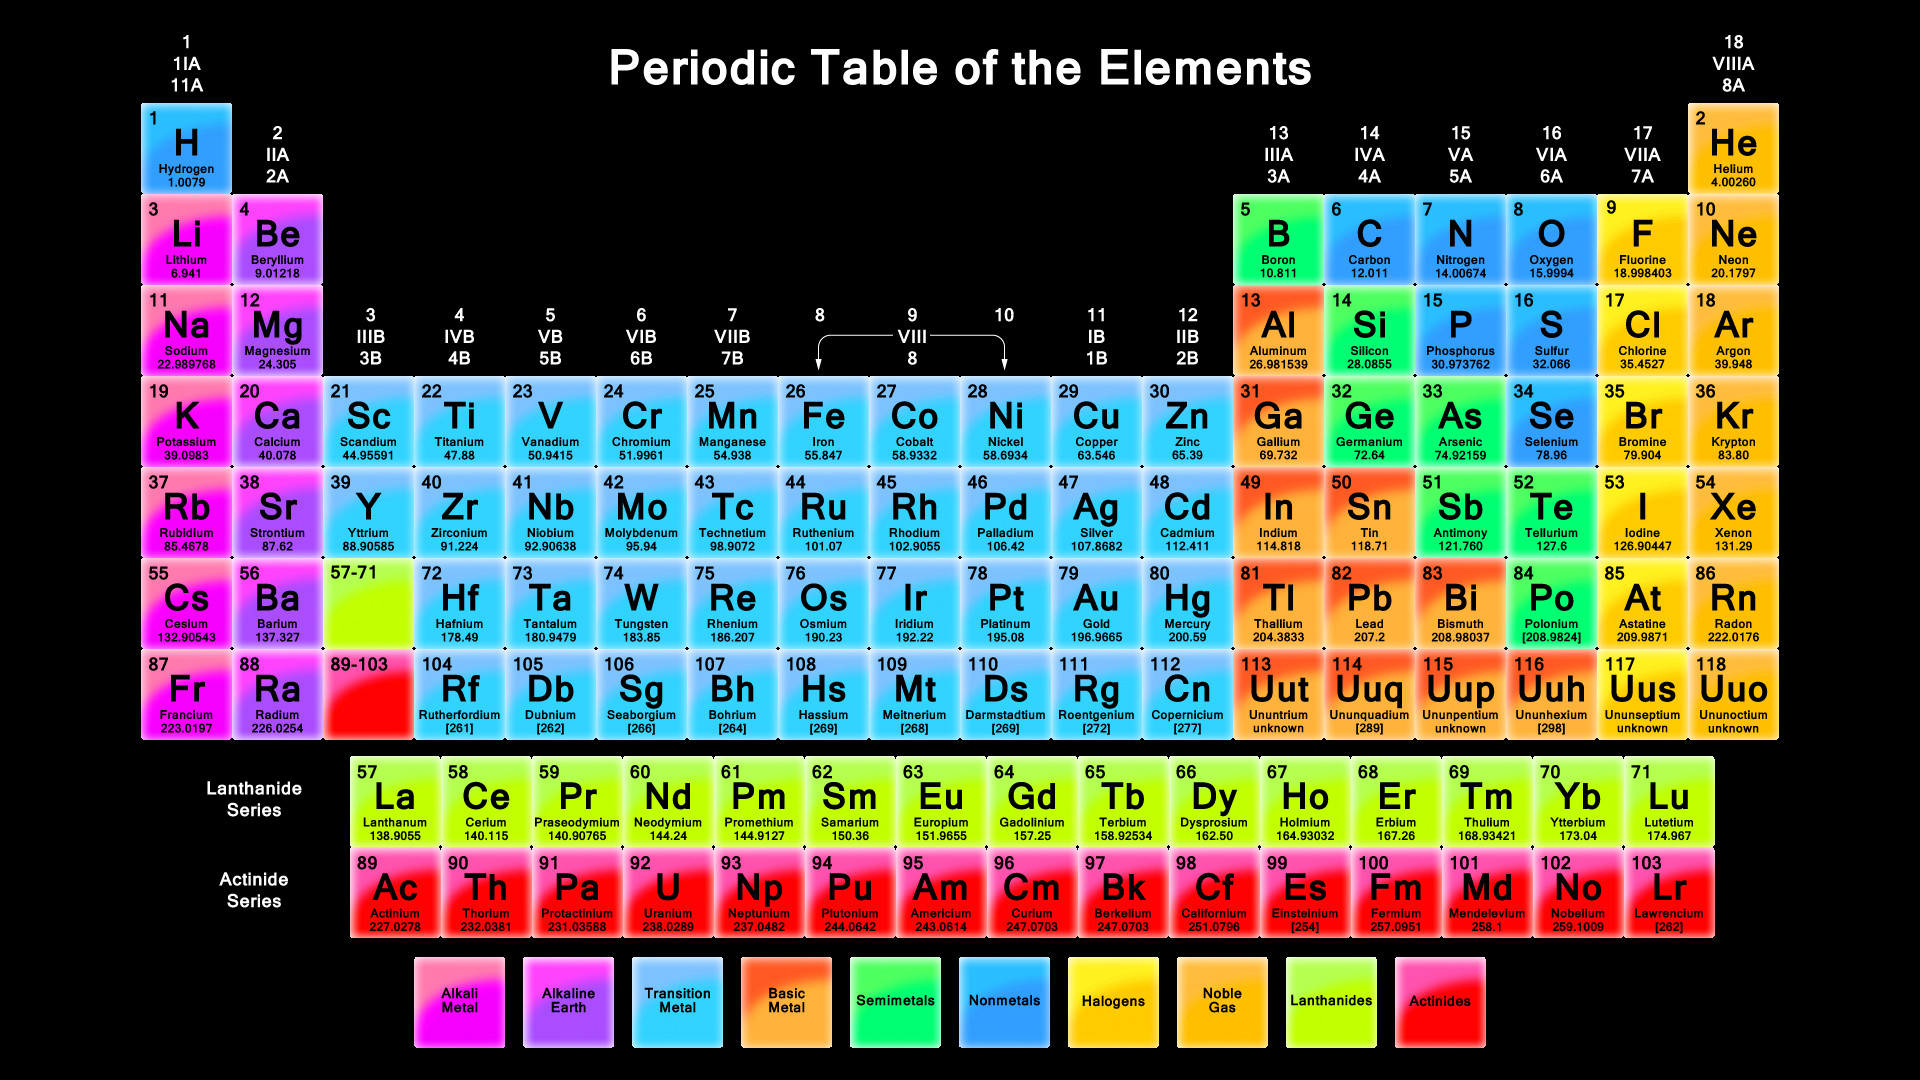 Periodic table of elements desktop wallpaper wallpapers for periodic table backgrounds 2560x1600 wallpapers for urtaz Images